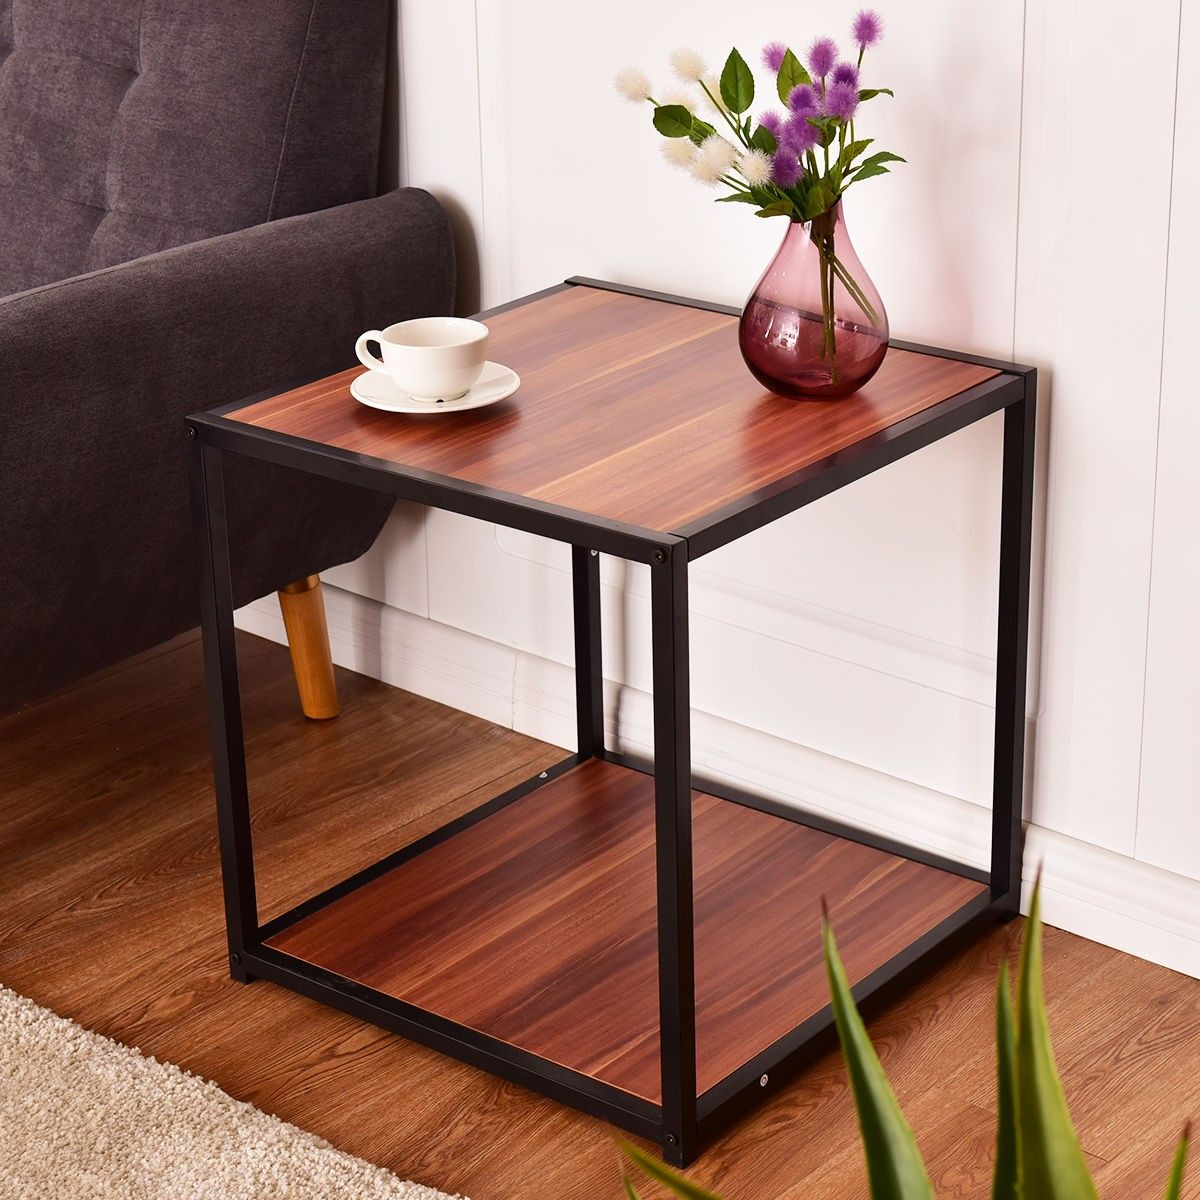 20 Metal Square Side Table Coffee Stand Bottom With 2 Tier Shelf Coffee Table Couches Living Room Walnut Coffee Table